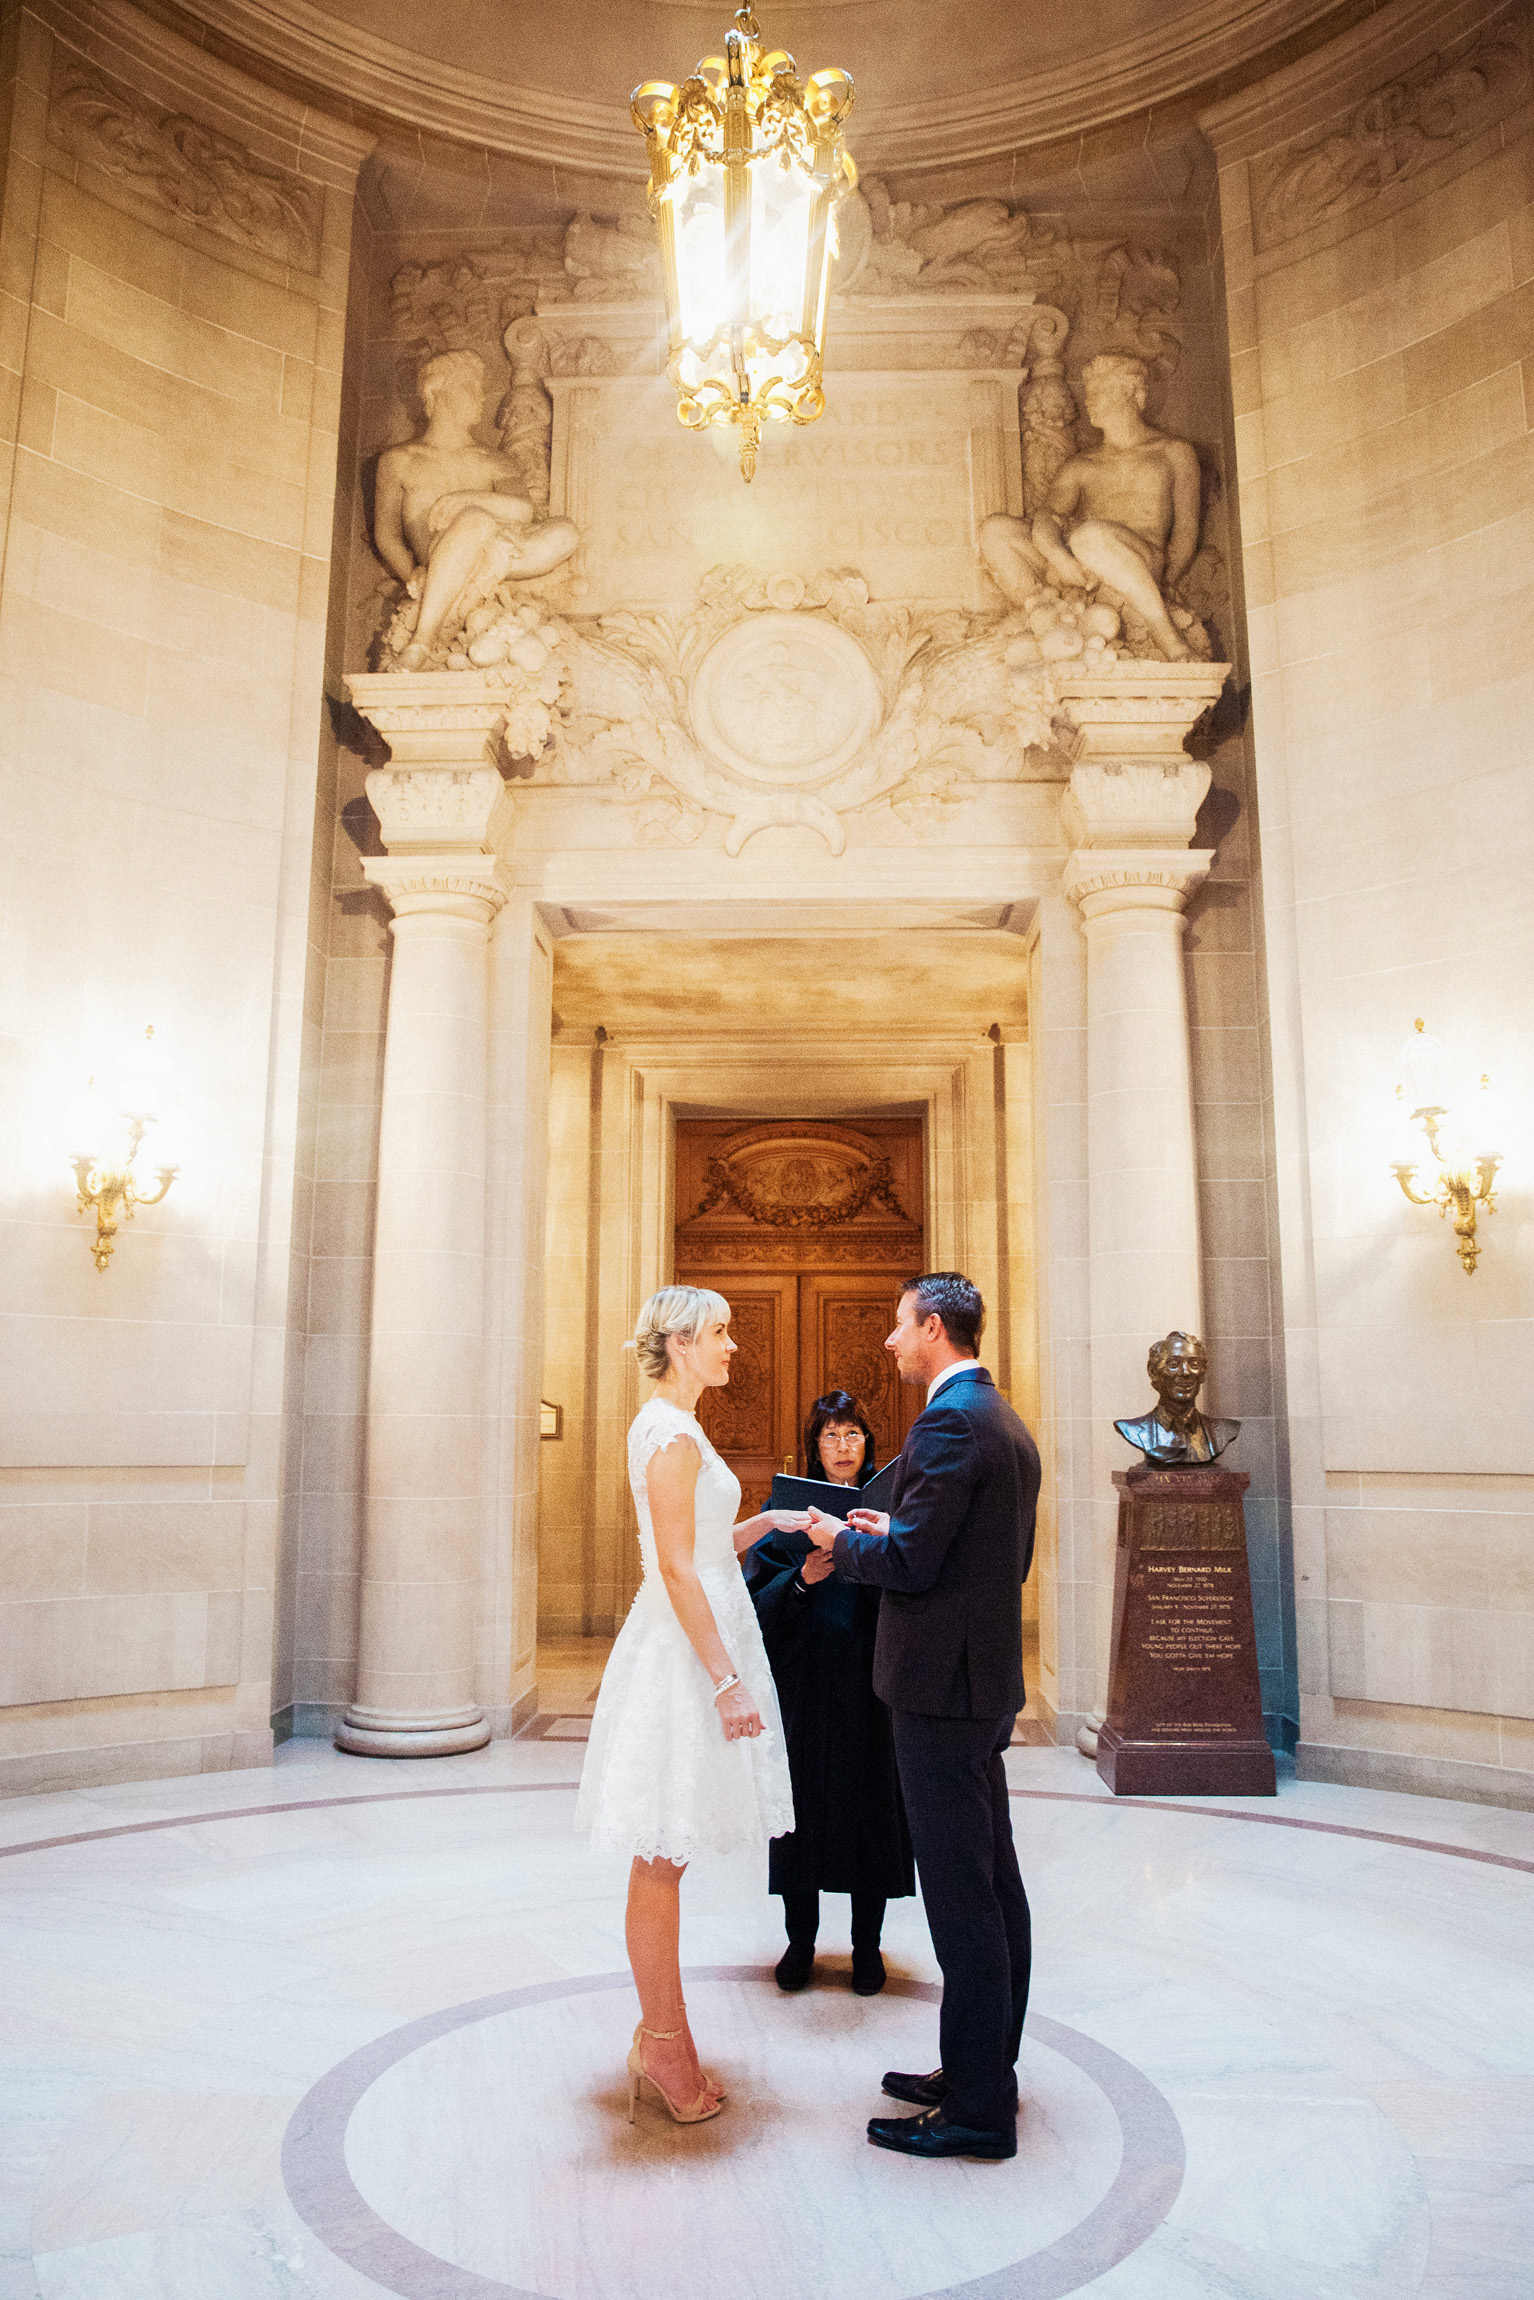 035_janaeshieldsphotography_sanfrancisco_cityhall_weddings.jpg